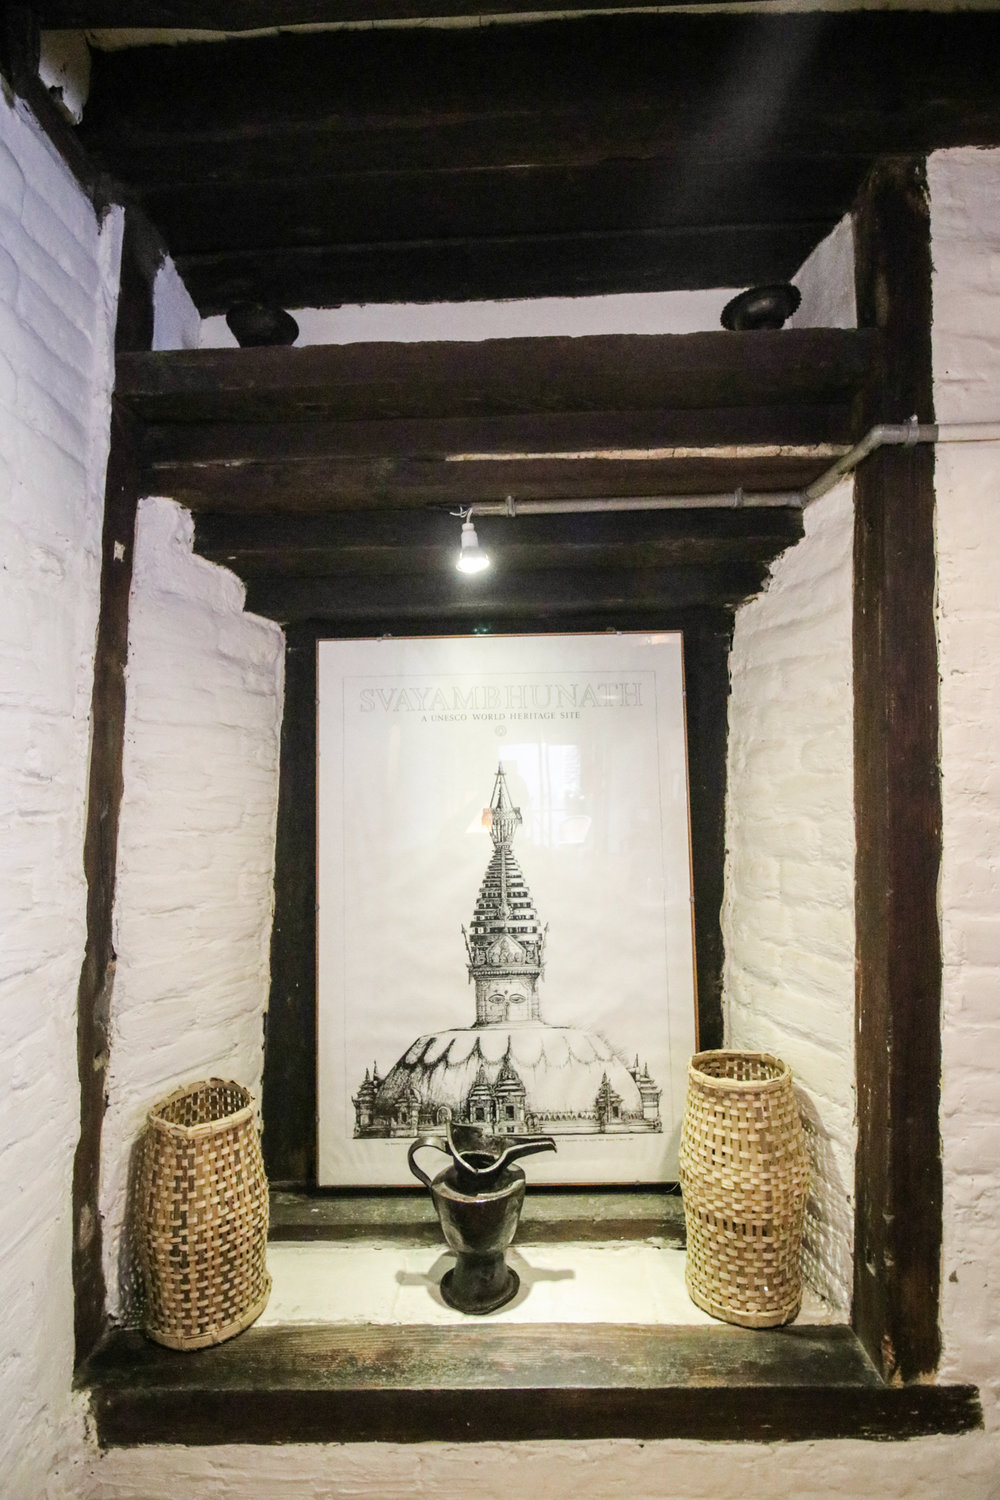 this is the printed picture of Swyambhunath Stupa, one of the famous religious site in Kathmandu Valley.